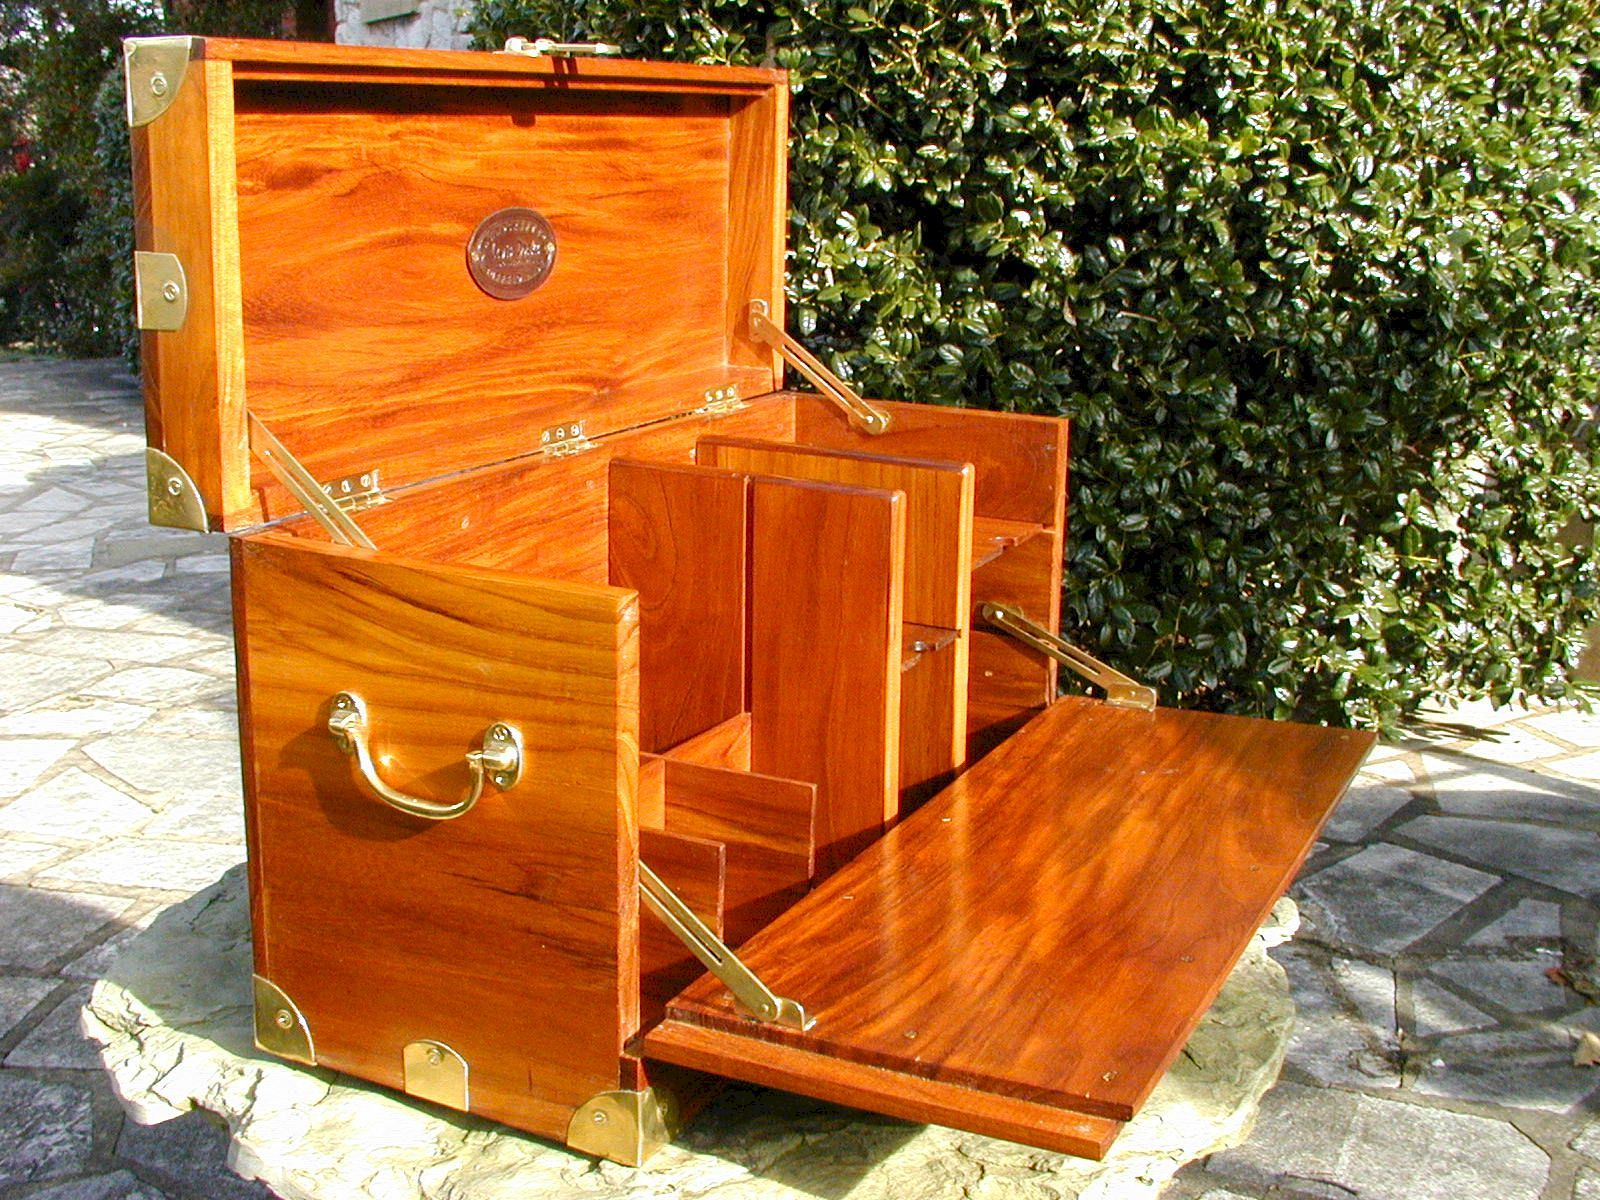 british campaign furniture is my new passion because of its smart and compact design and it